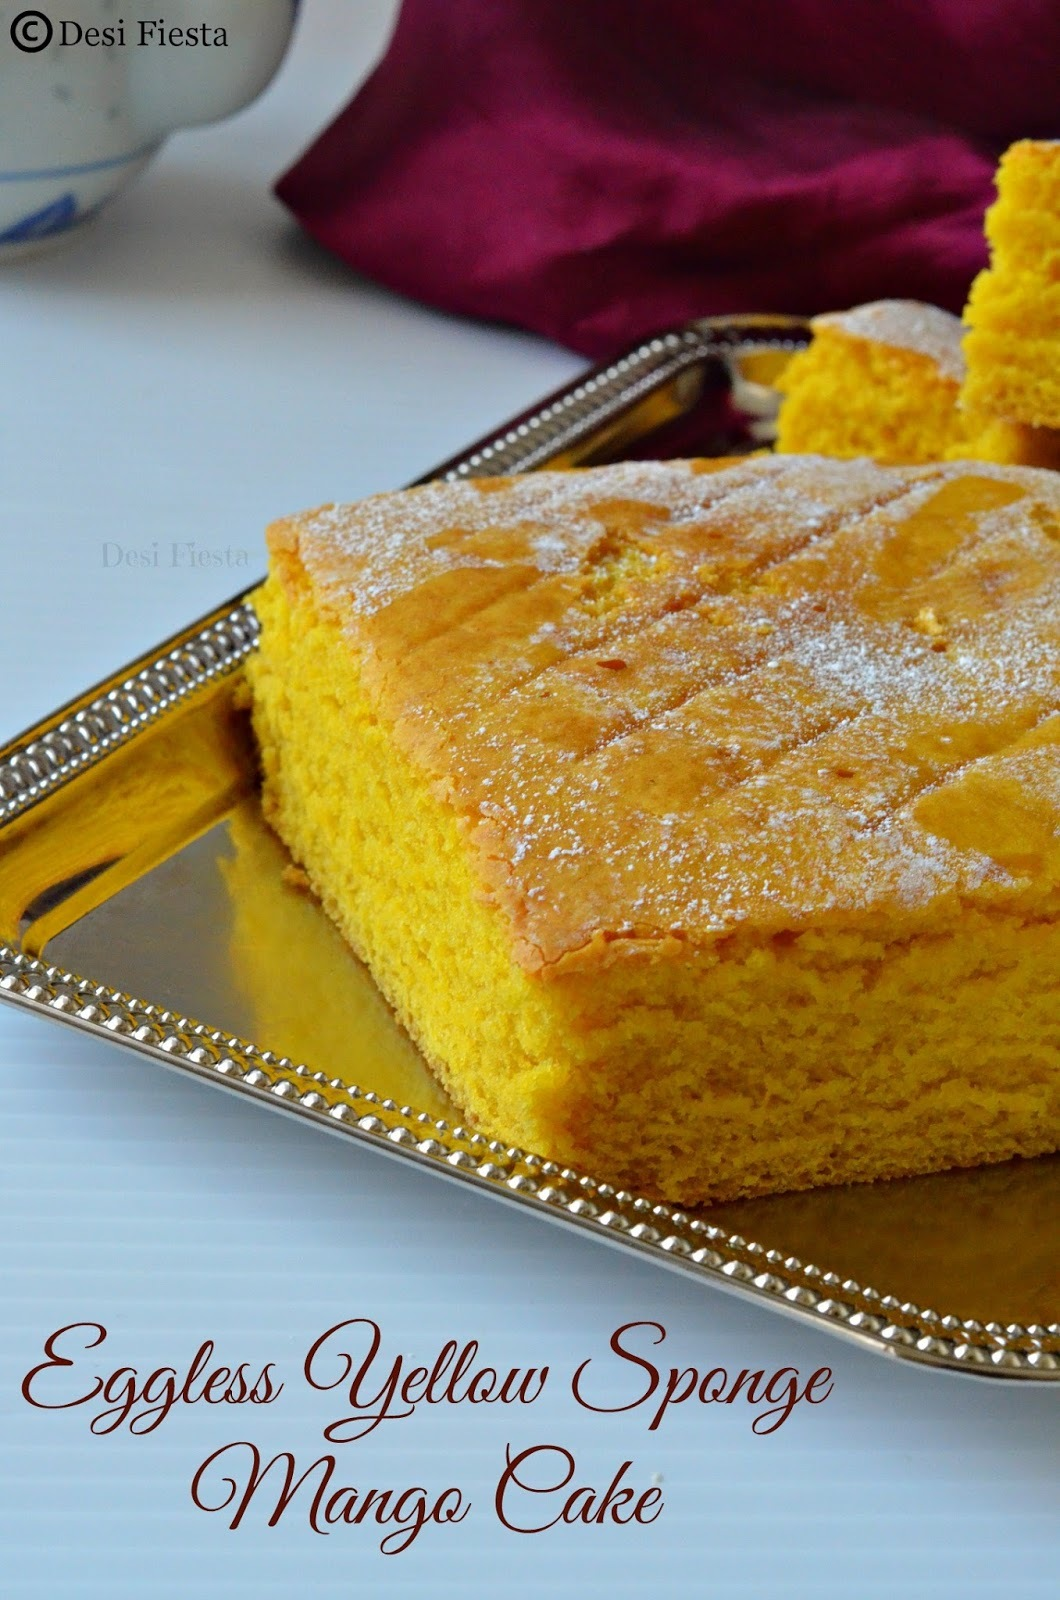 Eggless Yellow Sponge Mango Cake